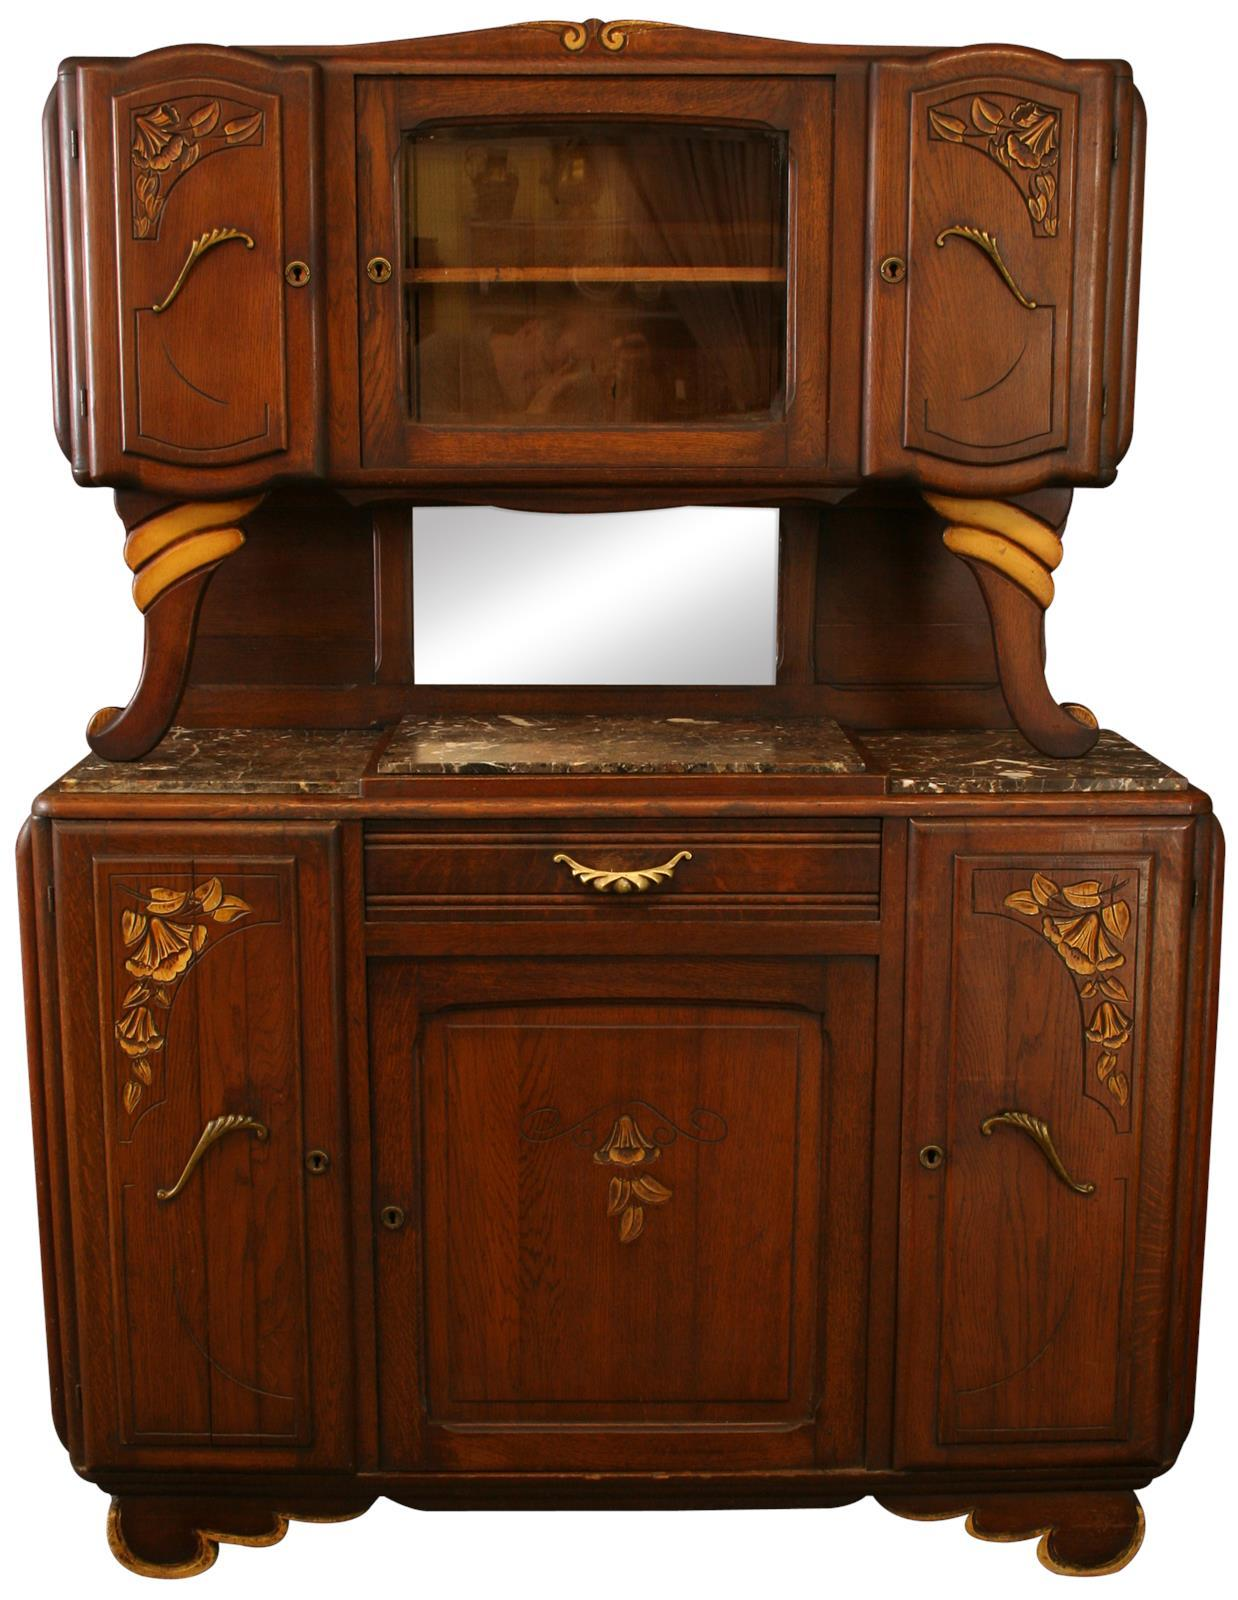 1920 art deco oak buffet chairish. Black Bedroom Furniture Sets. Home Design Ideas